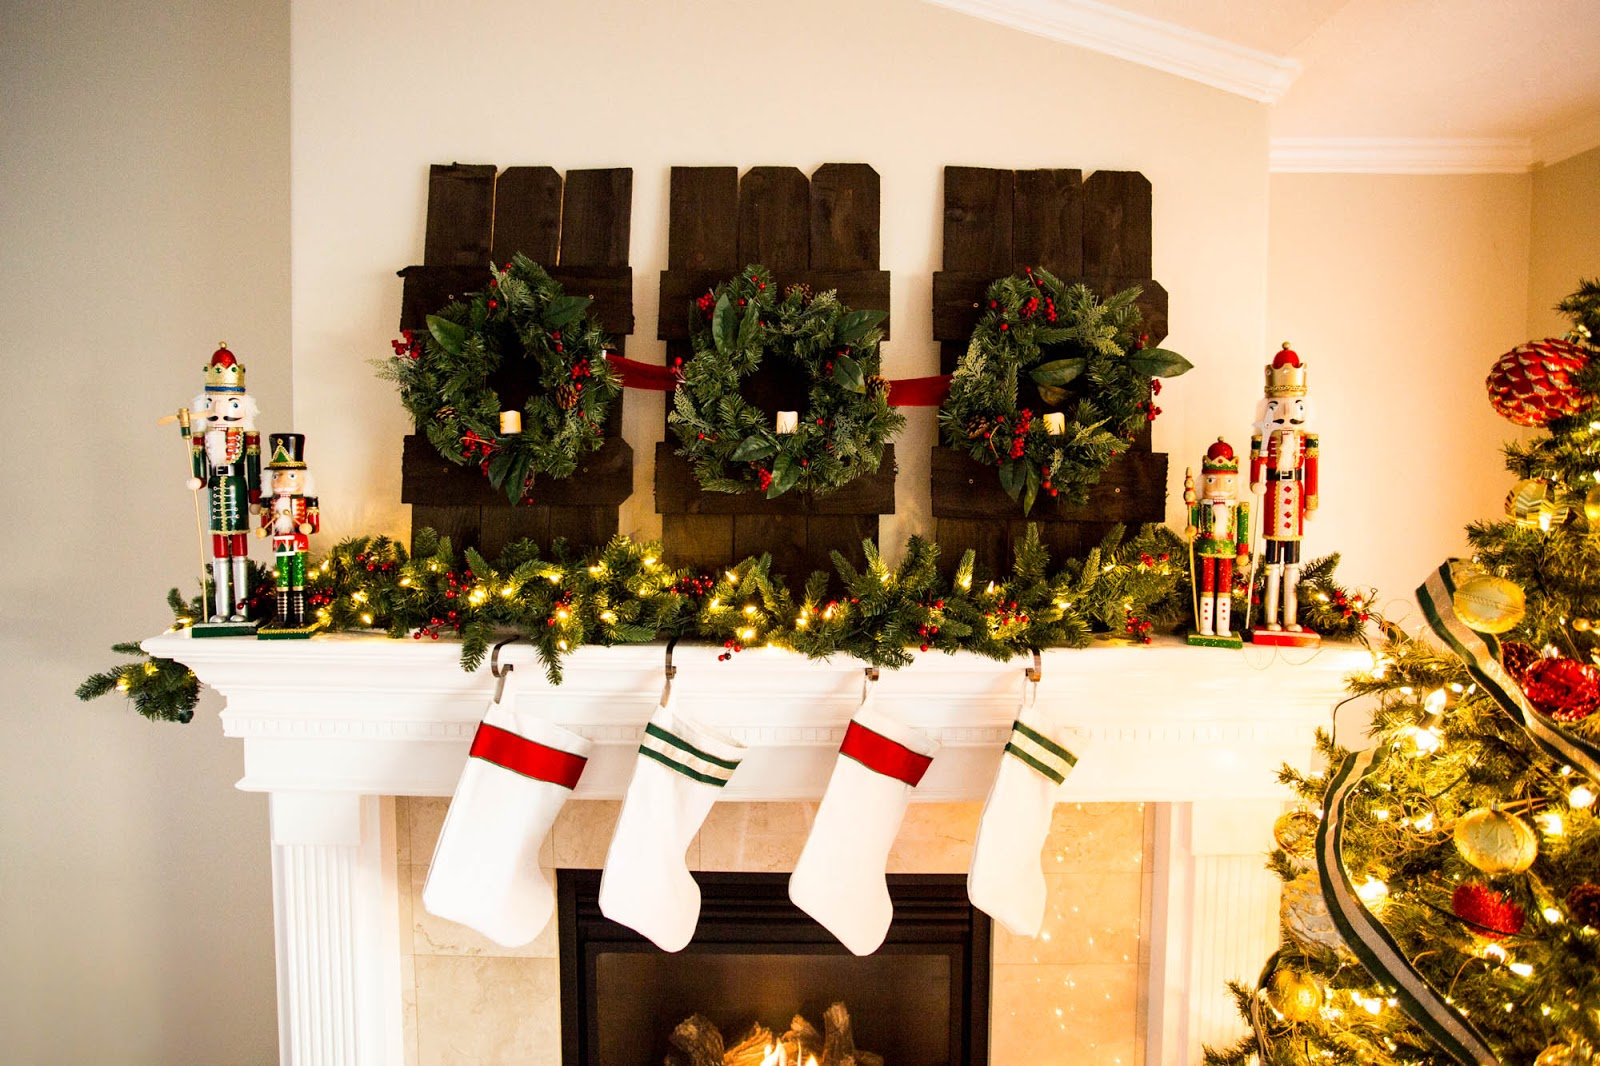 Do it yourself divas decorating a mantle for christmas with home depot diy christmas mantle fireplace nutcrackers garland lights candles solutioingenieria Gallery